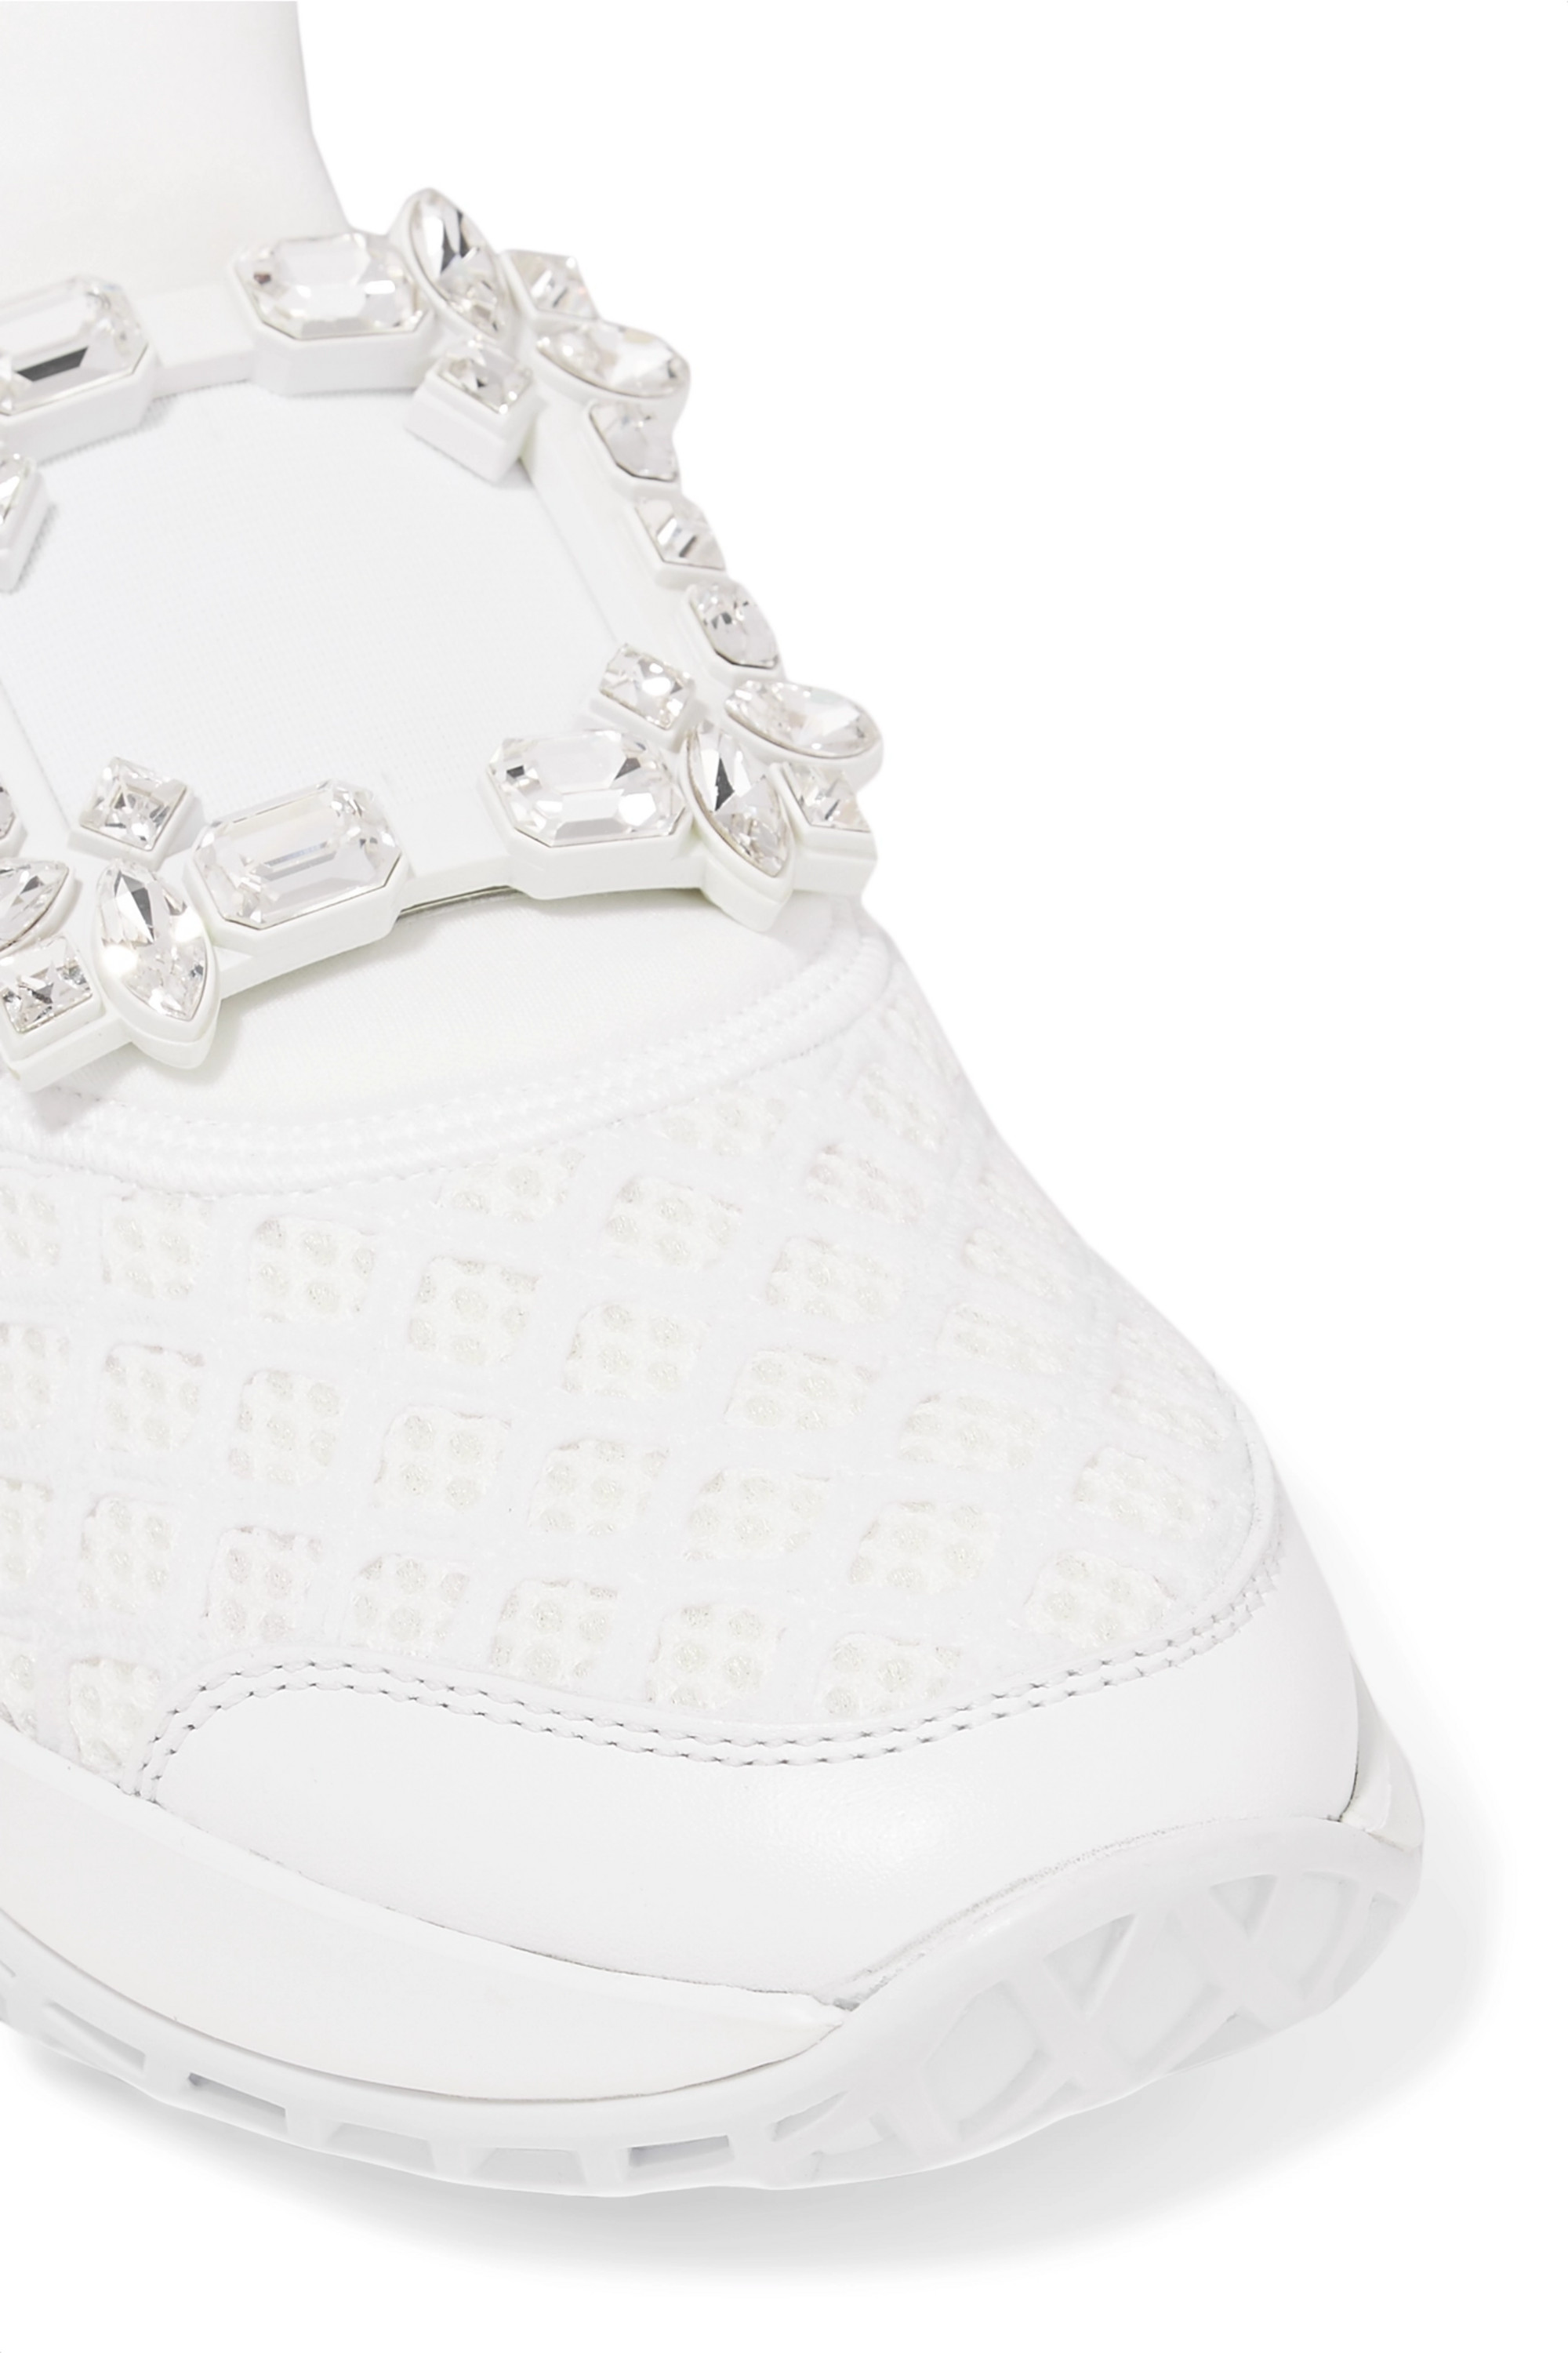 Roger Vivier Viv Run crystal-embellished neoprene, mesh and leather slip-on sneakers